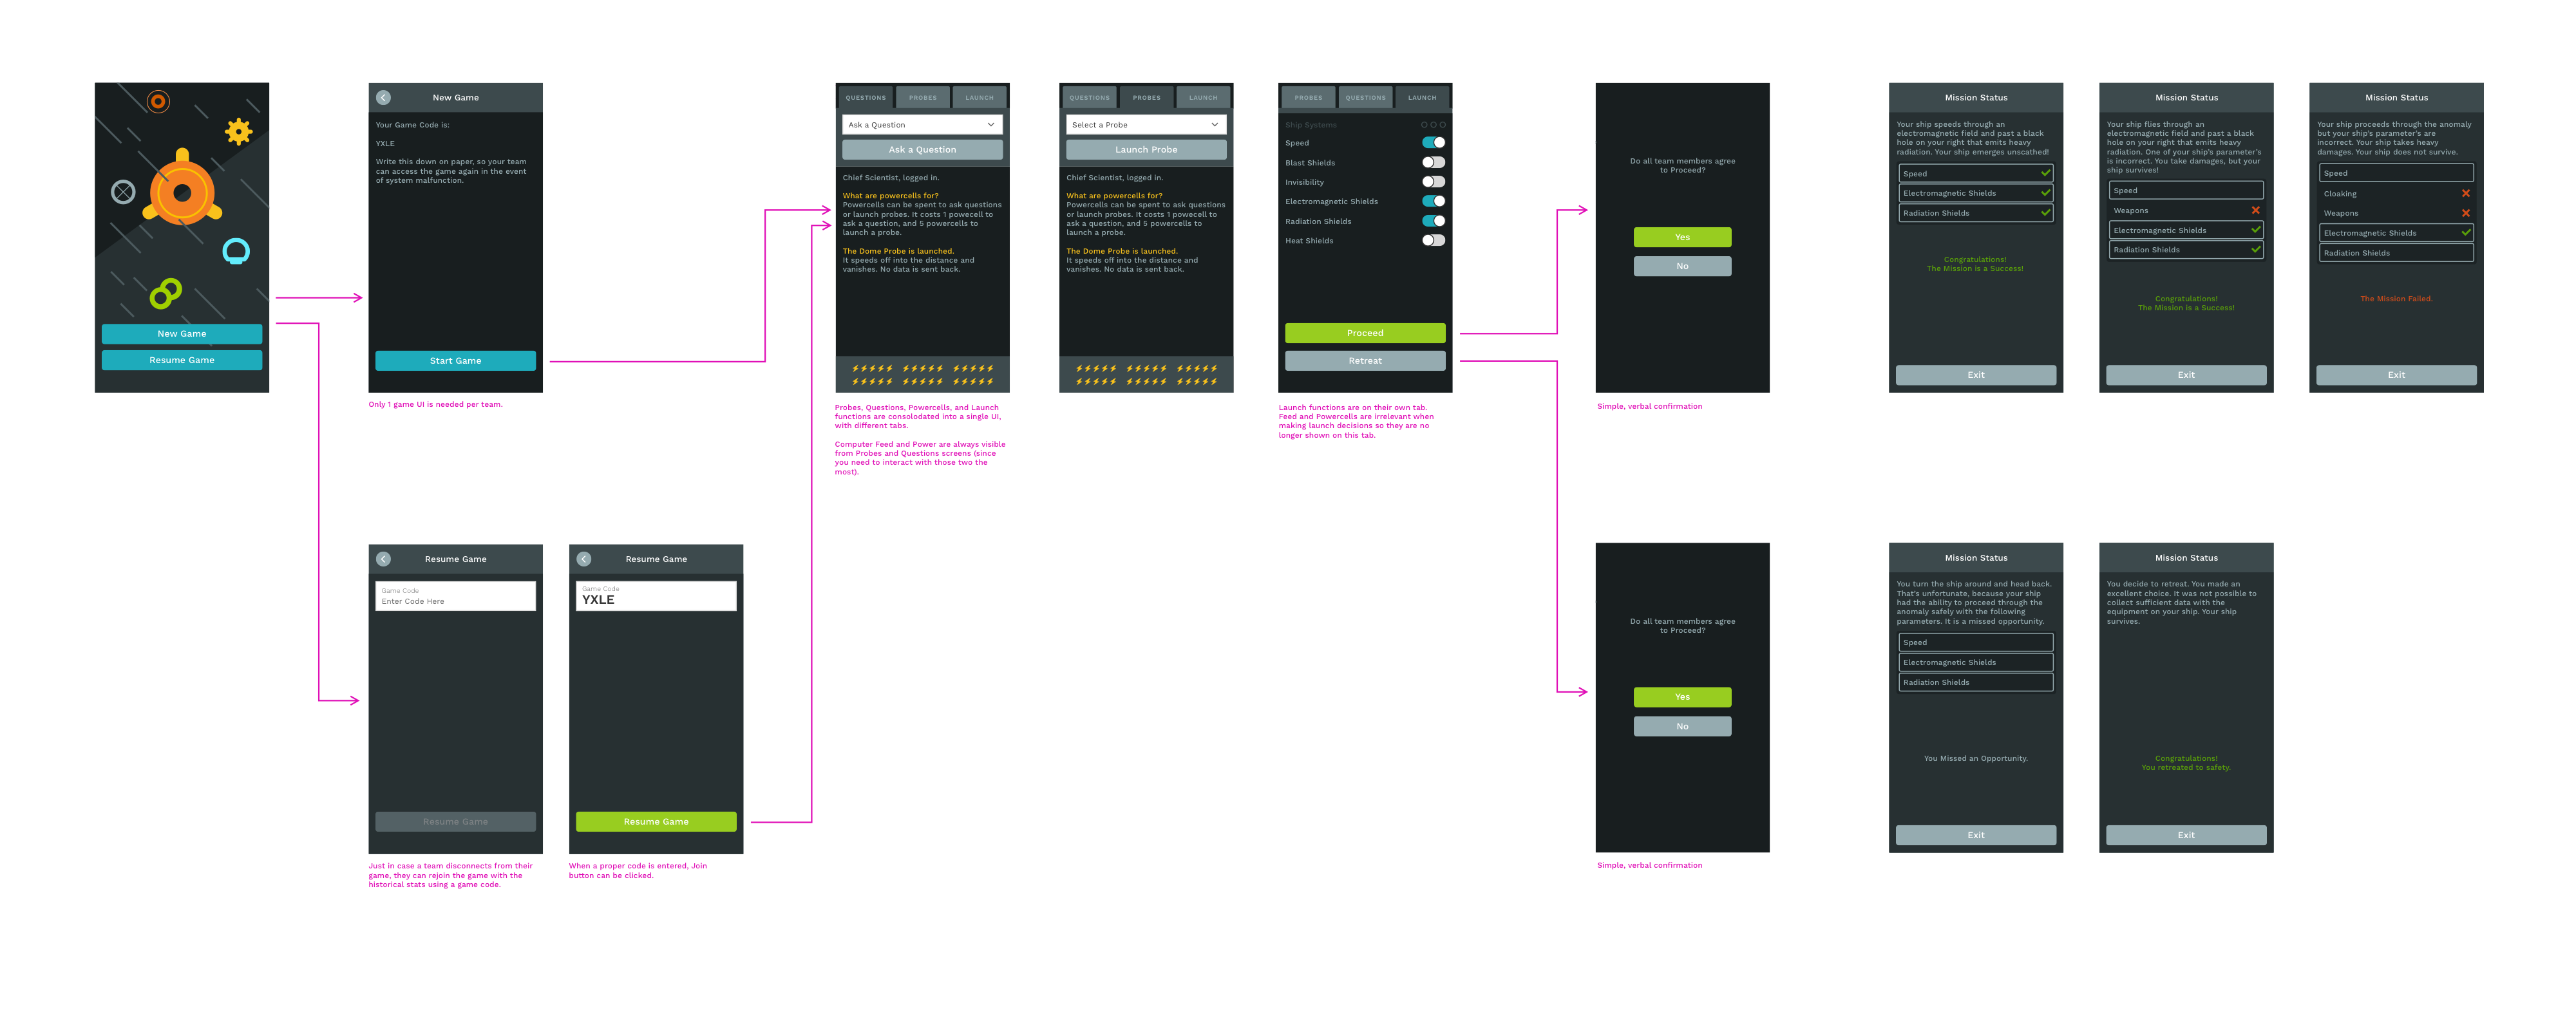 Four separate user flows were simplified to a single flow in the game UI.